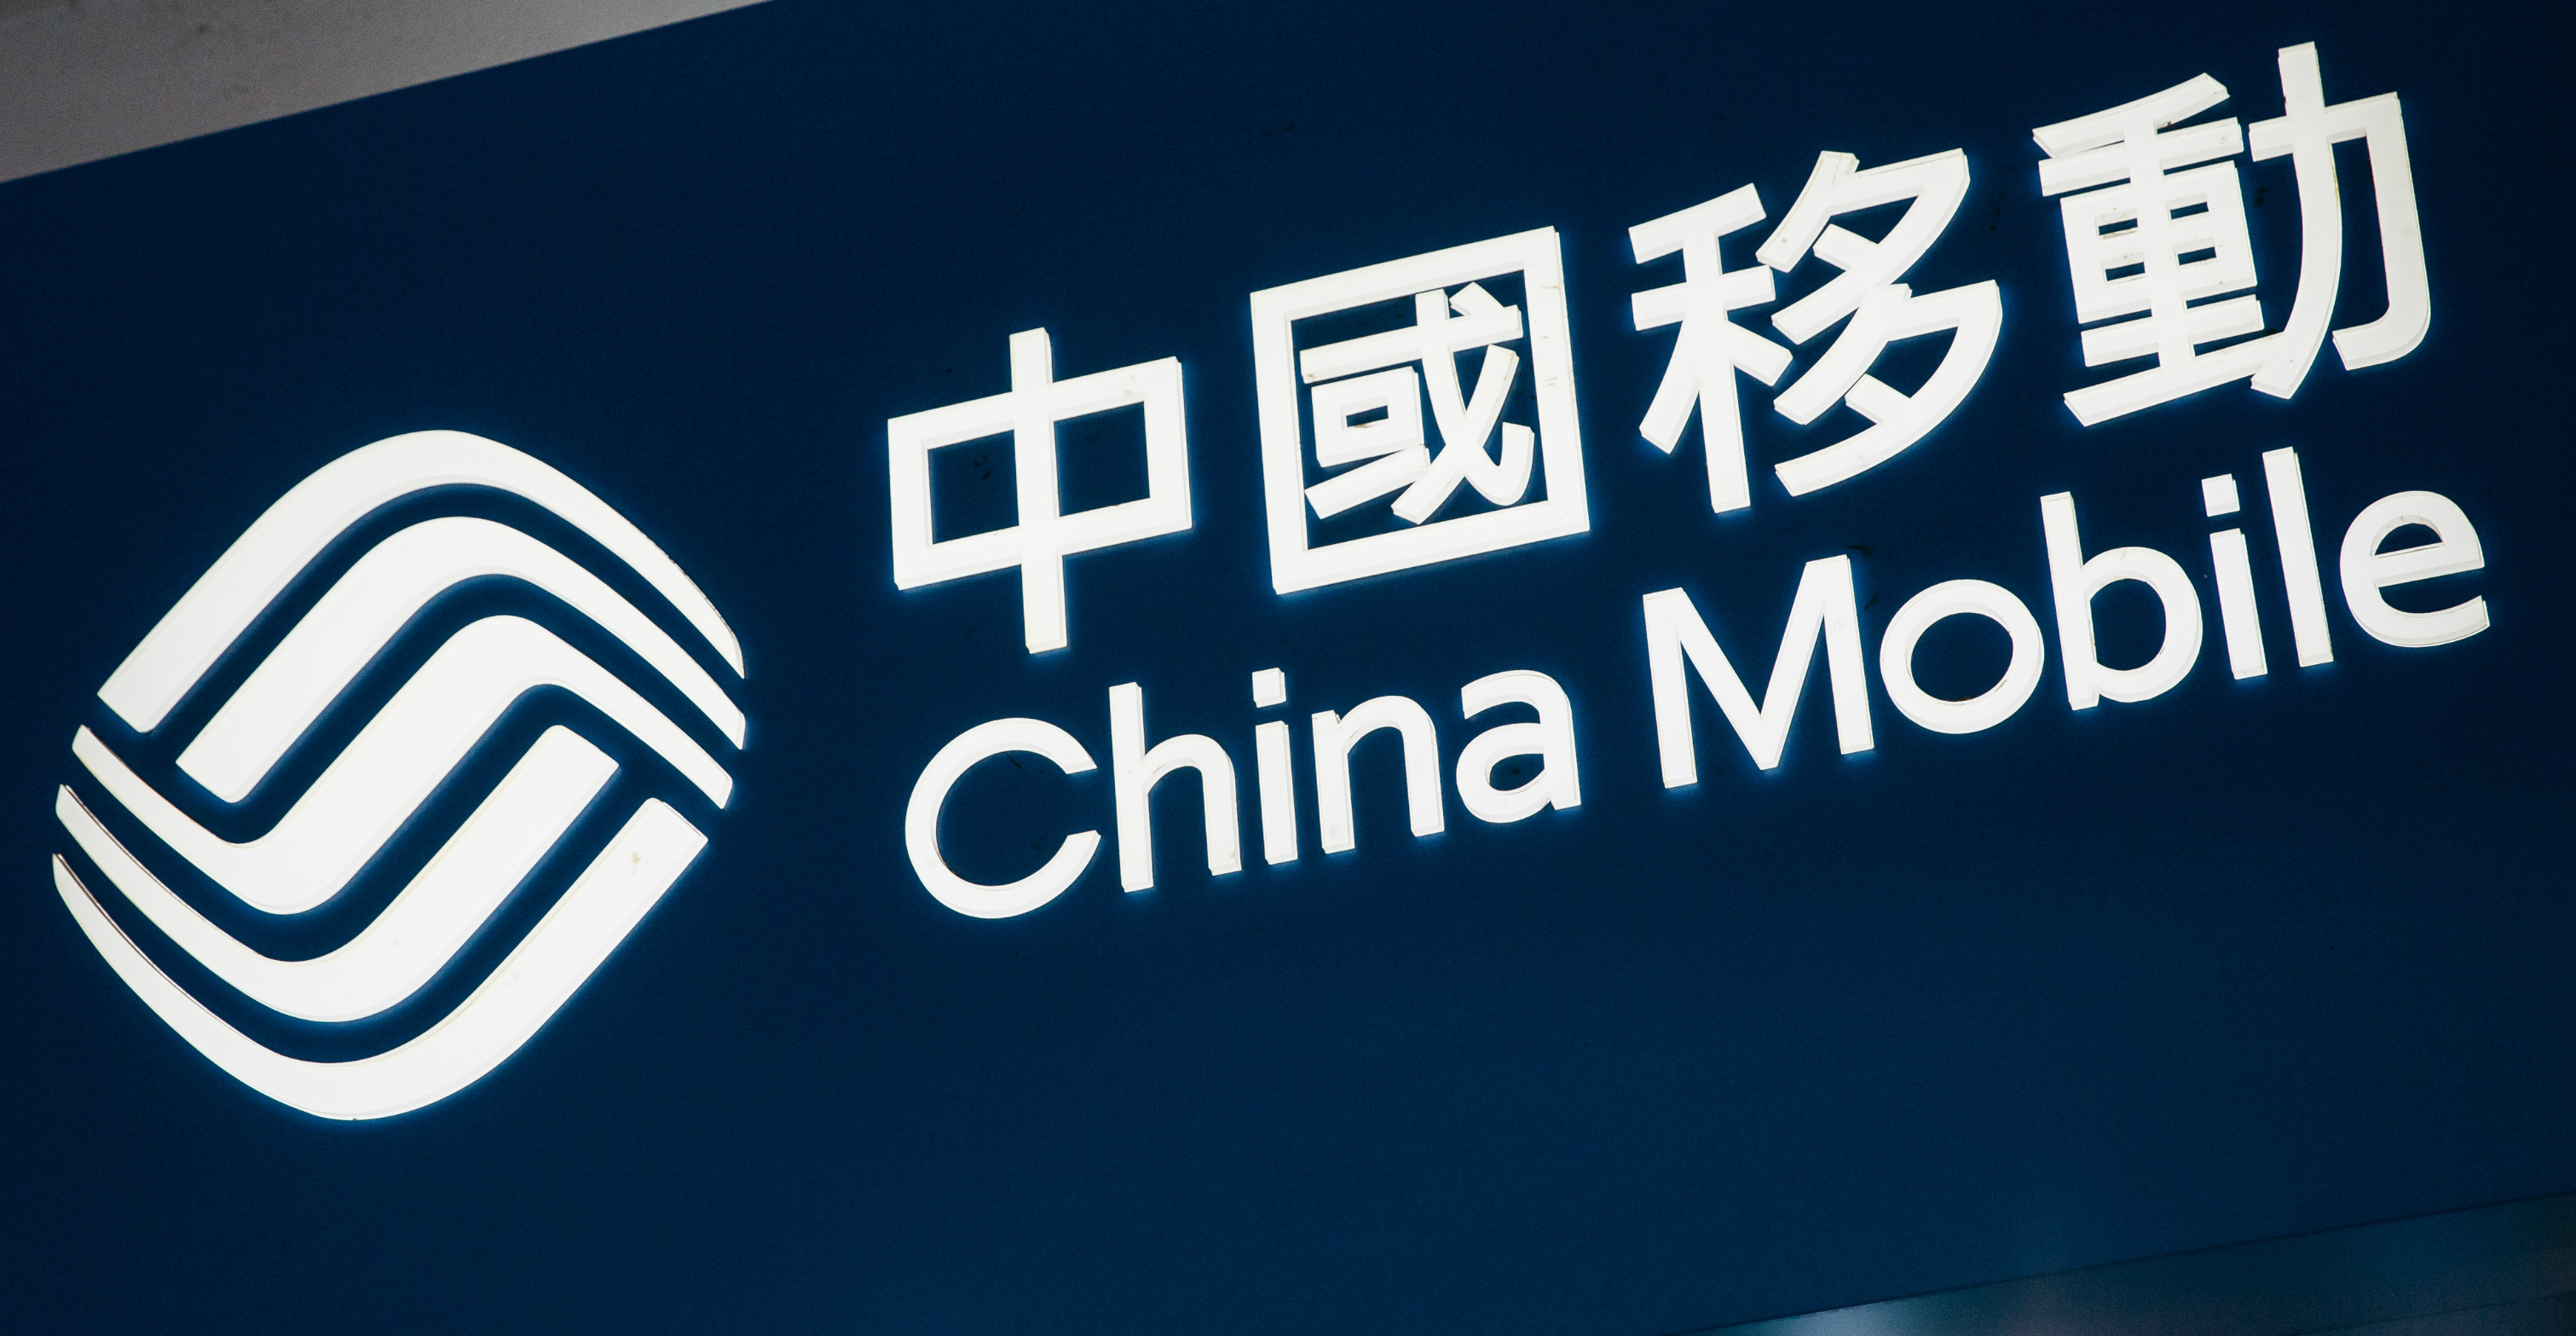 In the 5G spectrum allocation plan, China Mobile is most likely to be given 300 MHz on the 2.6GHz and 4.9GHz frequency bands. Photo: Bloomberg